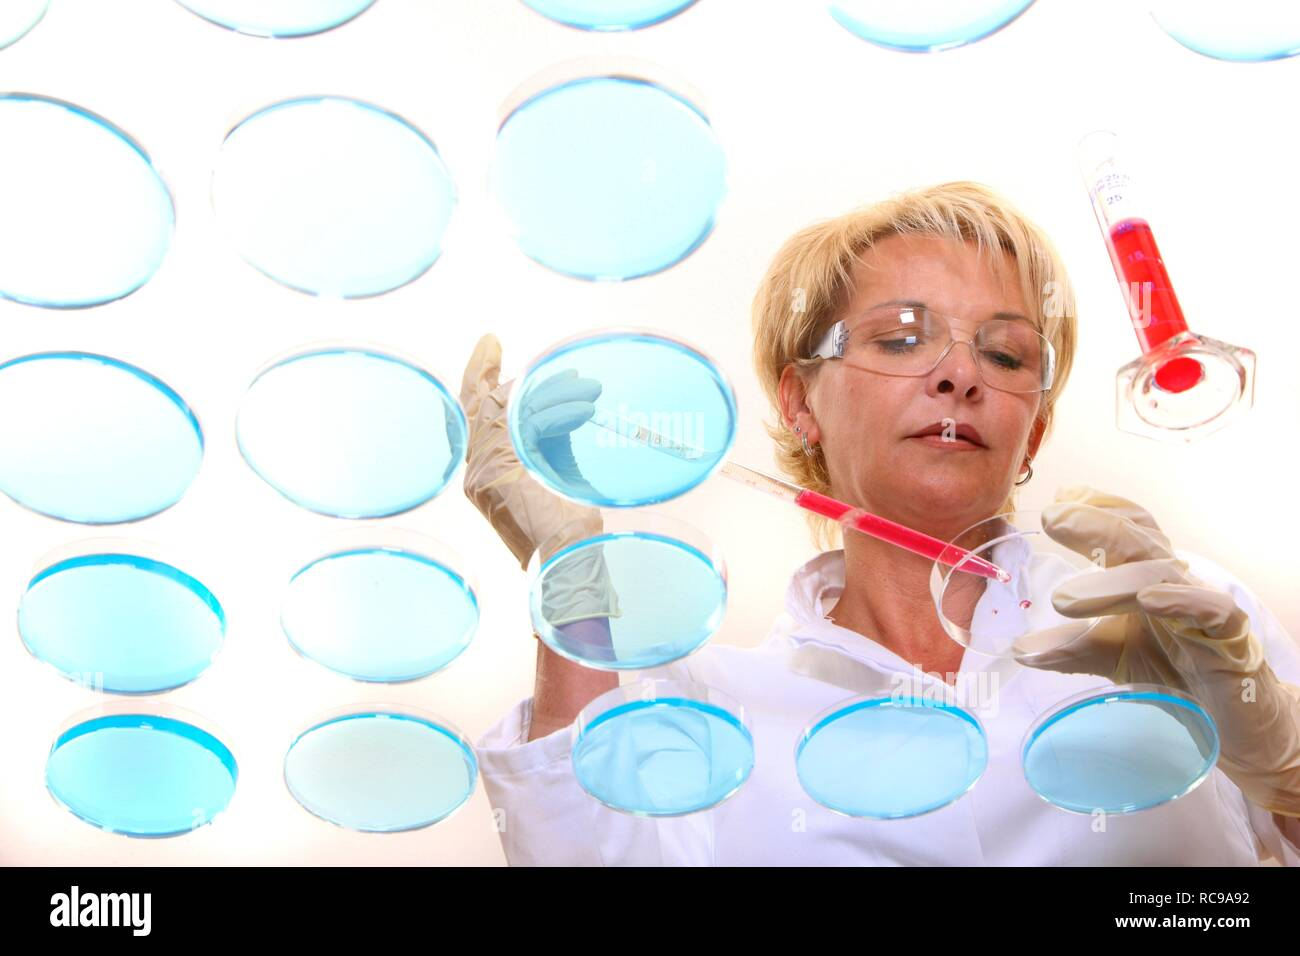 Laboratory technician working with bacteria cultures in petri dishes in the lab - Stock Image